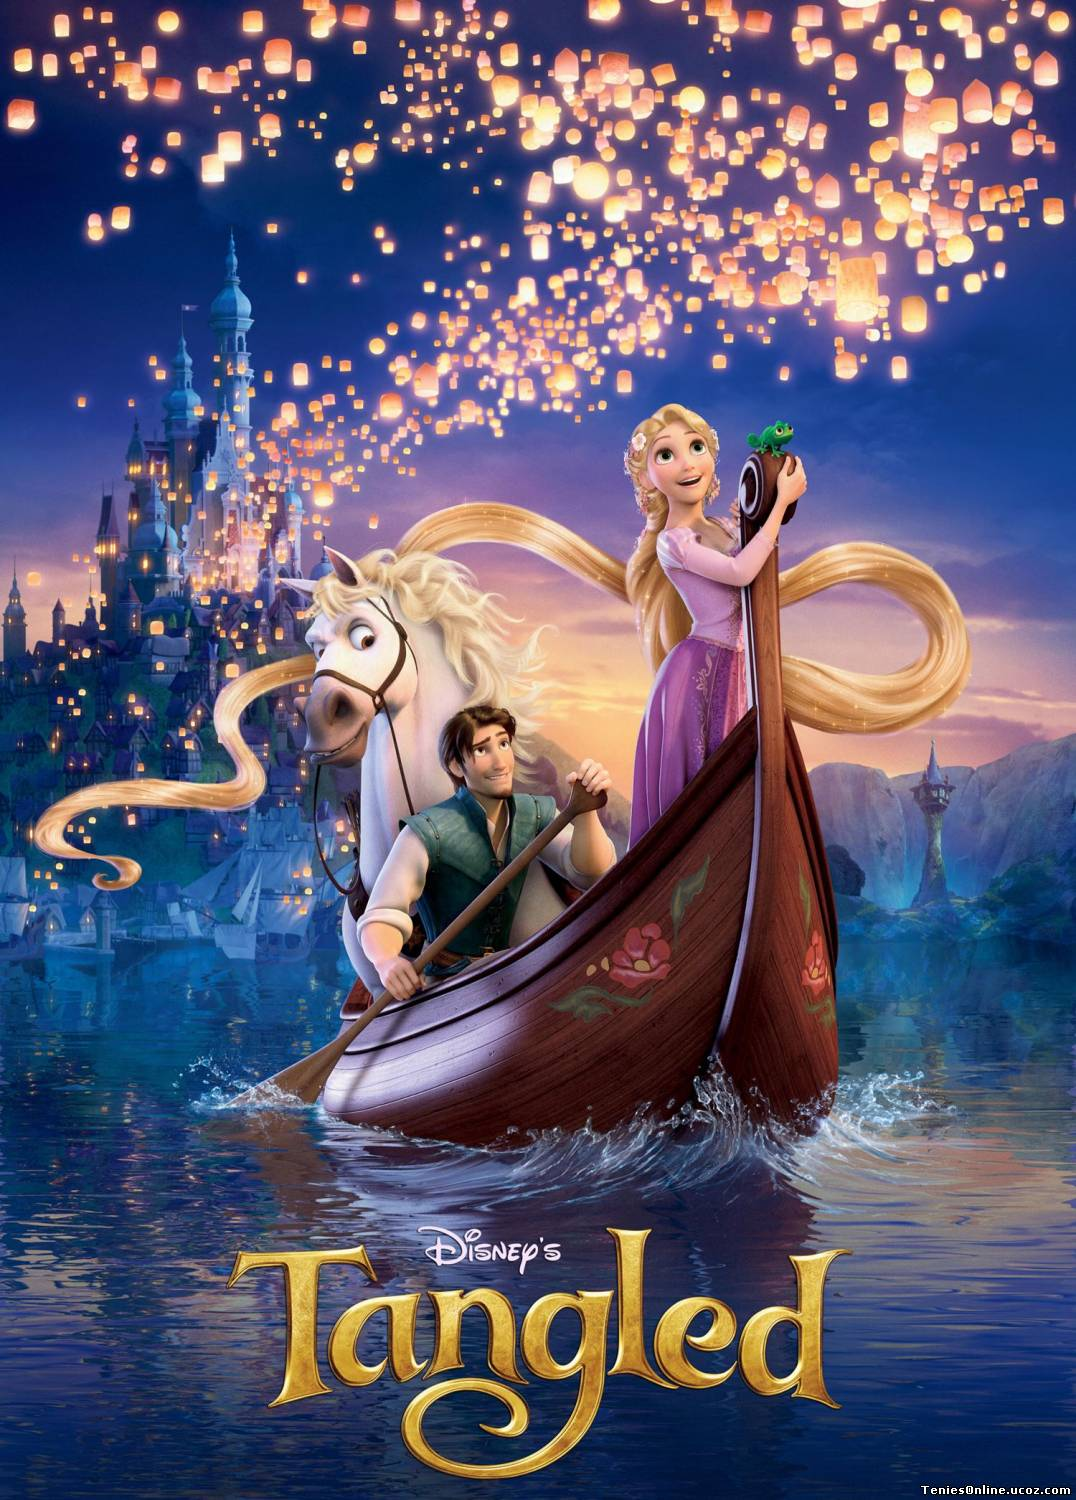 Tangled Ever After (2010)